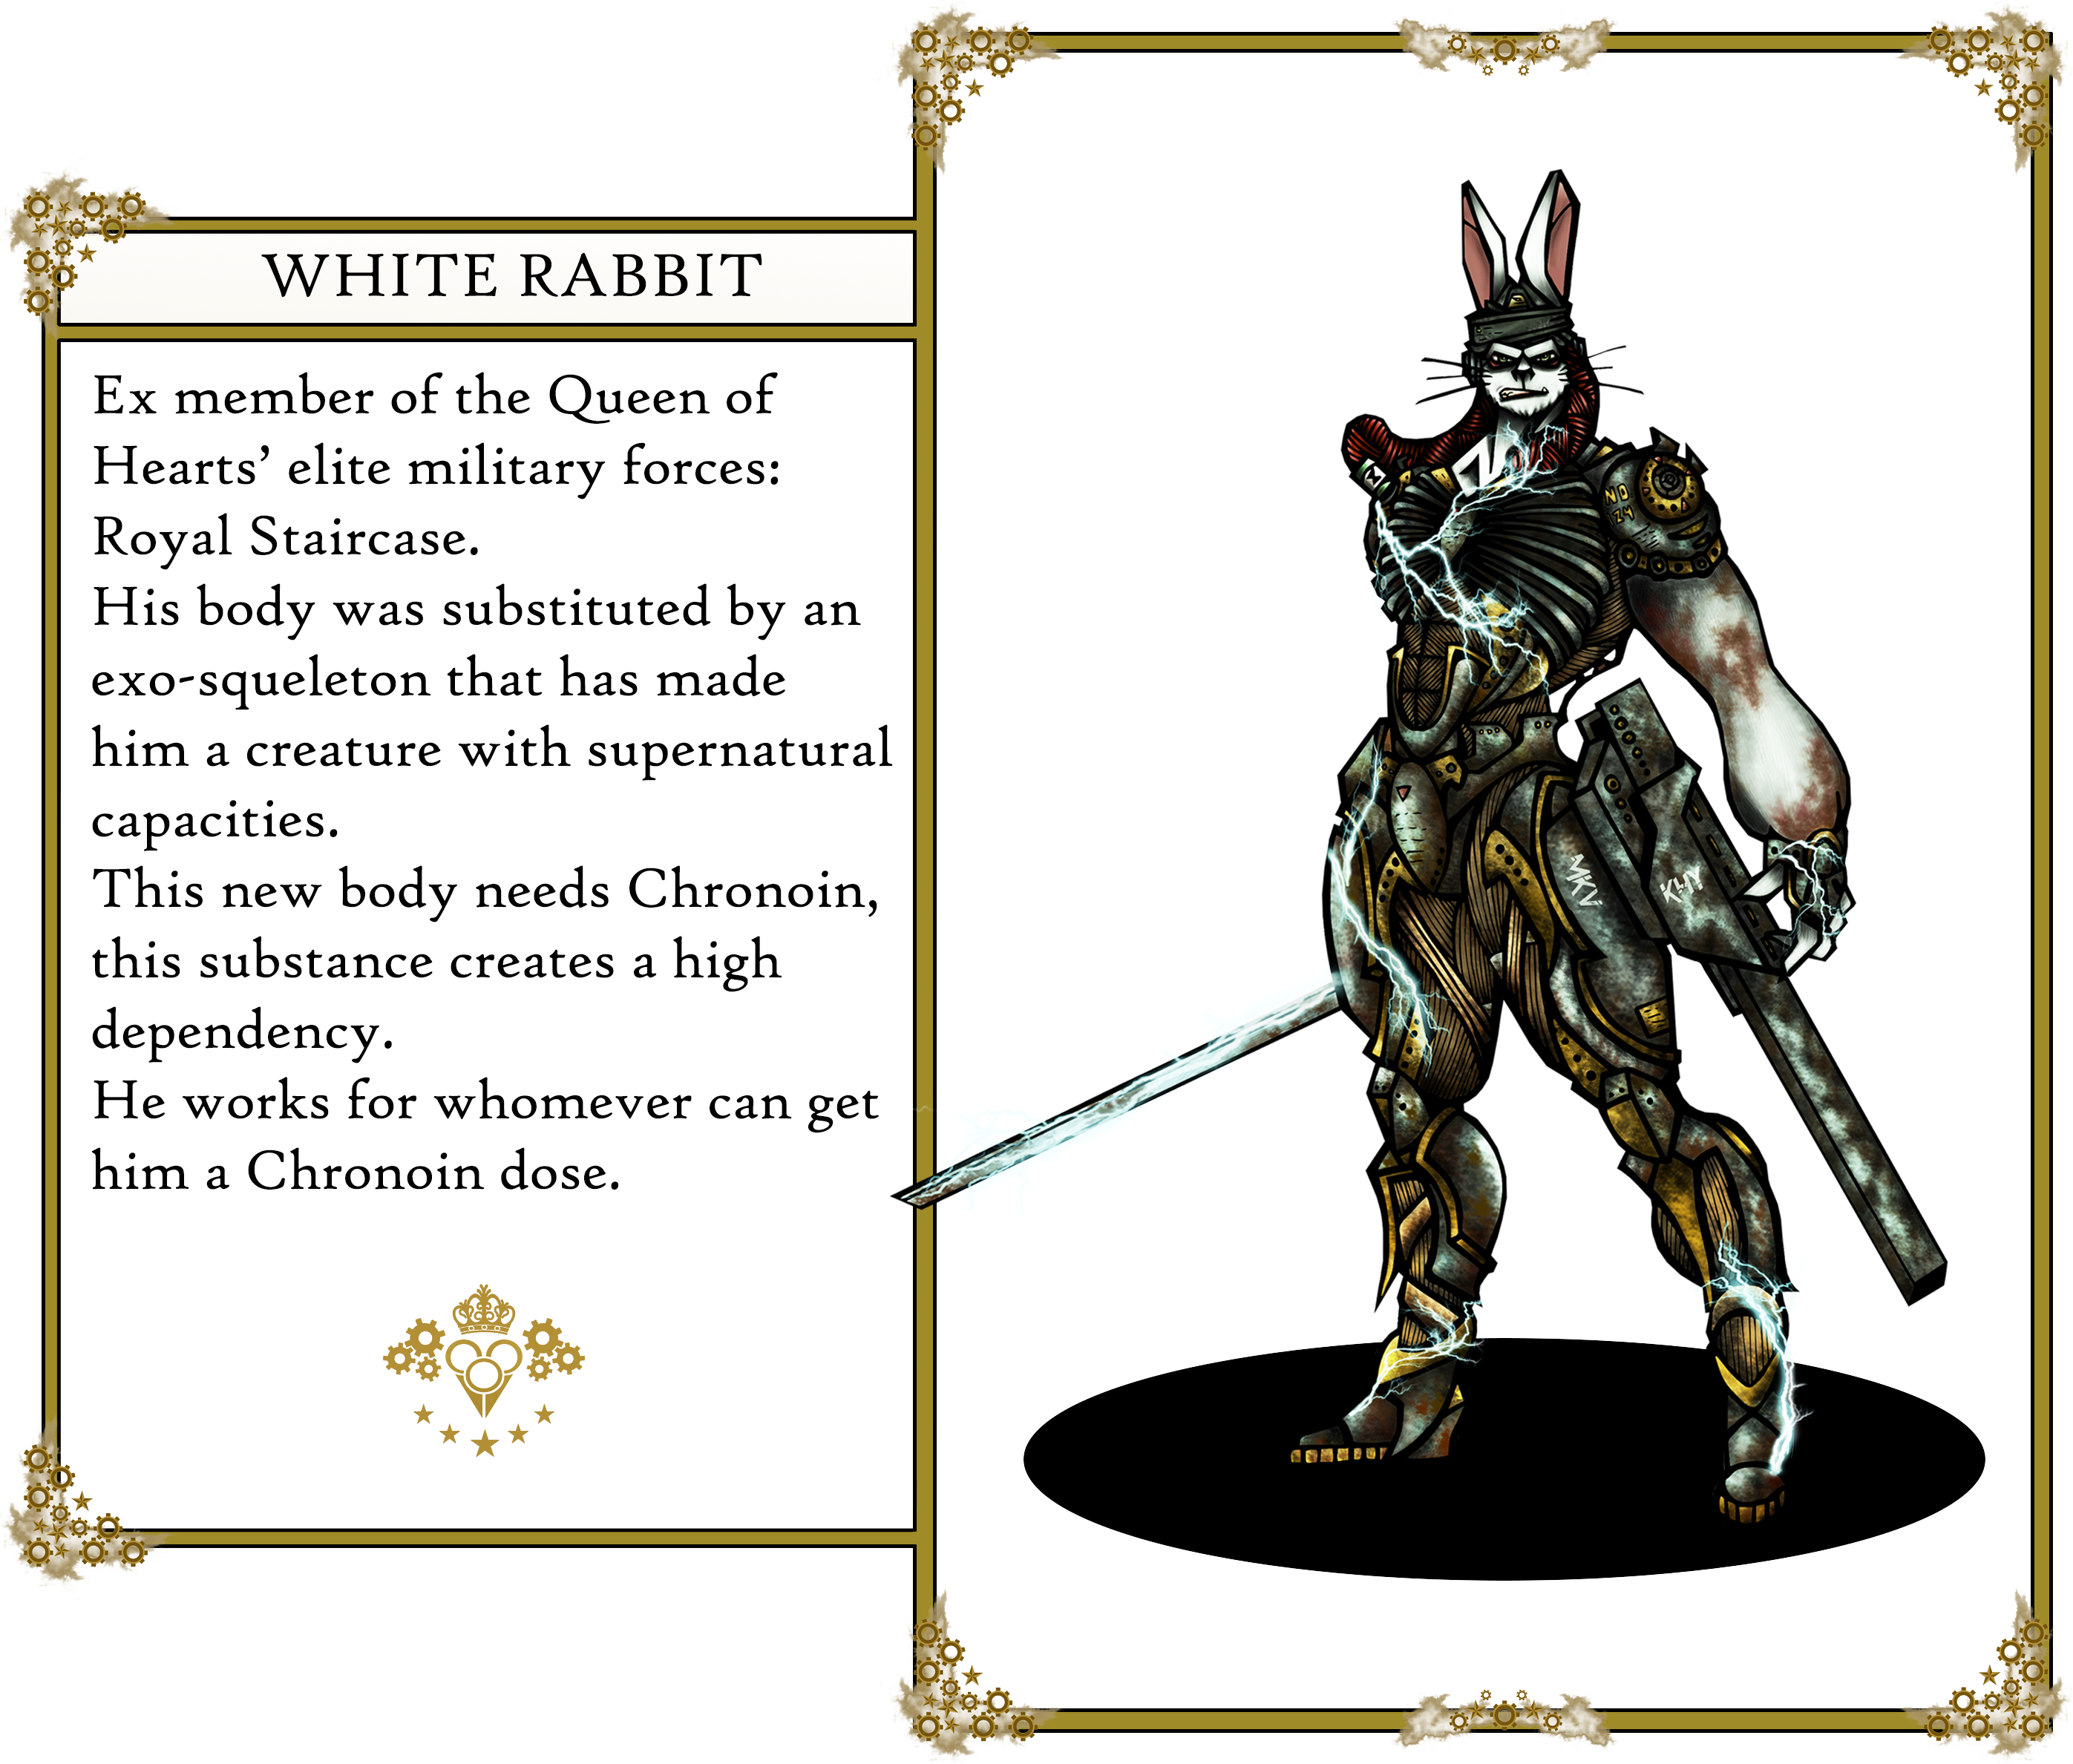 The Oz's tales. White Rabbit:                          Ex member of the Queen of Hearts' elite military forces: Royal Staircase.                          His body was substituted by an exo-squeleton that has made him a creature with supernatural capacities.                          This new body needs Chronoin, this substance creates a high dependency. He works for whomever can get him a Chronoin dose.